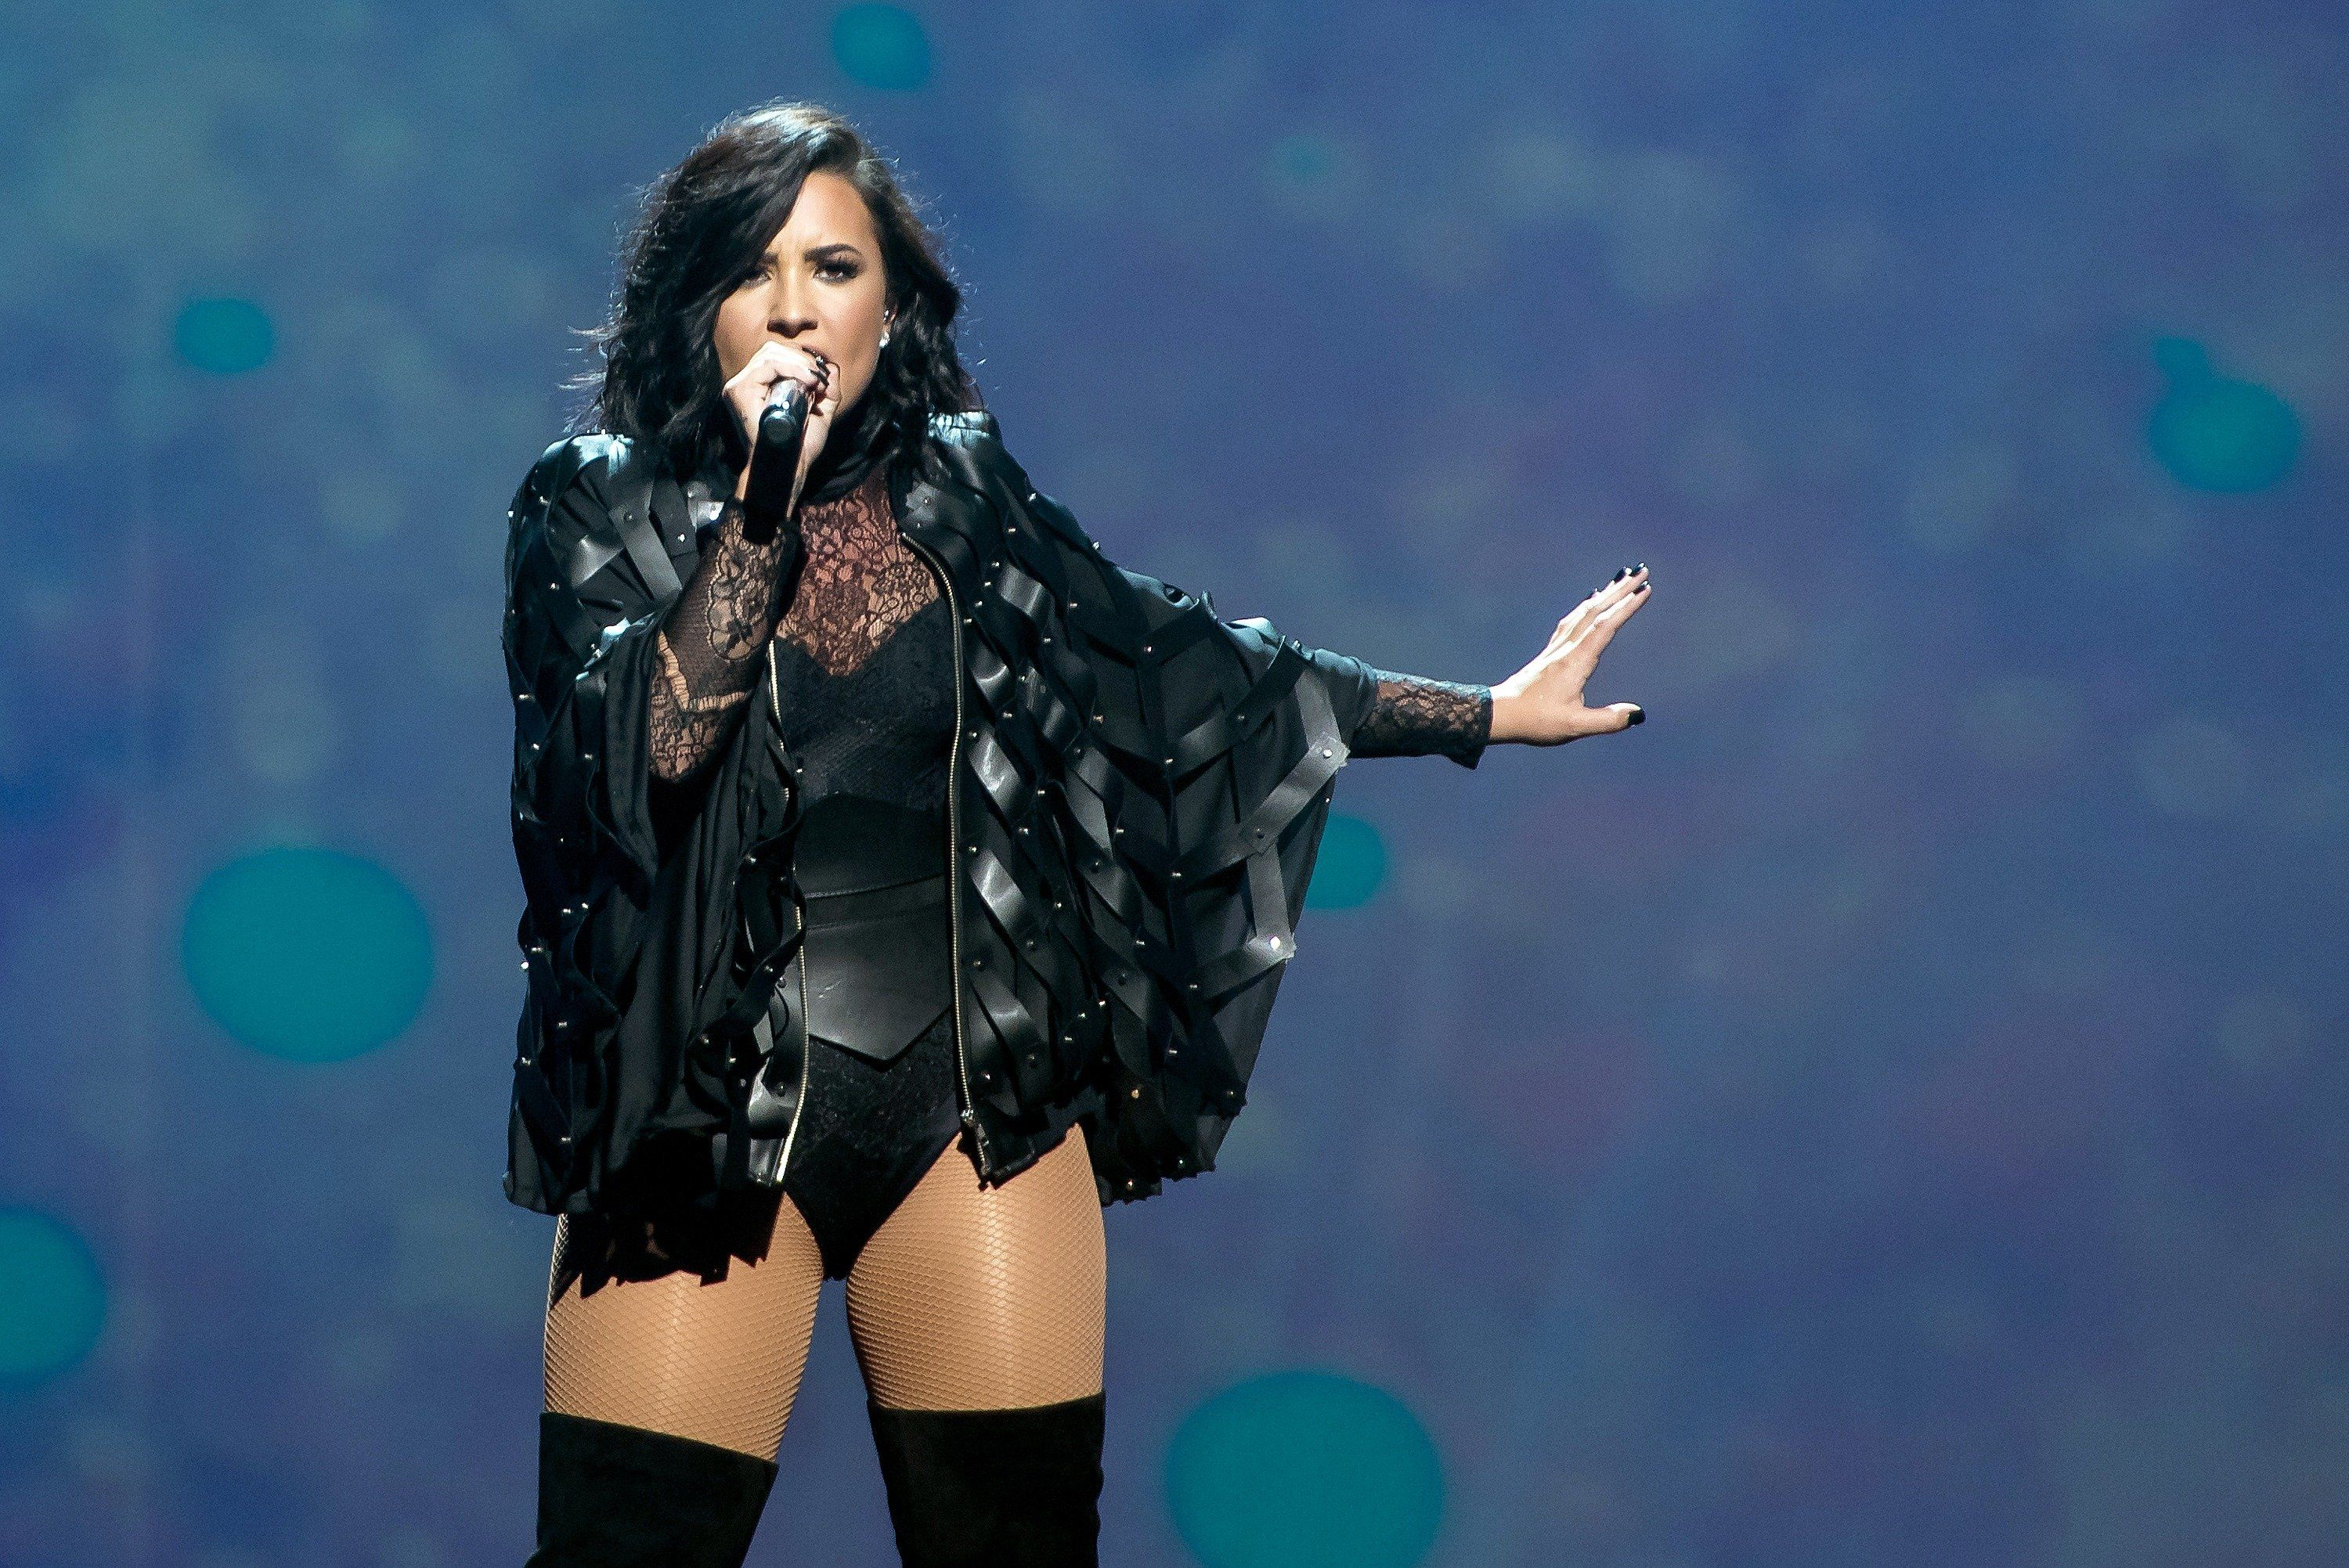 NEW YORK, NY - JULY 08:  Demi Lovato performs on stage during the 2016 Honda Civic Tour: Future Now at Barclays Center on July 8, 2016 in New York City.  (Photo by Mike Pont/WireImage)